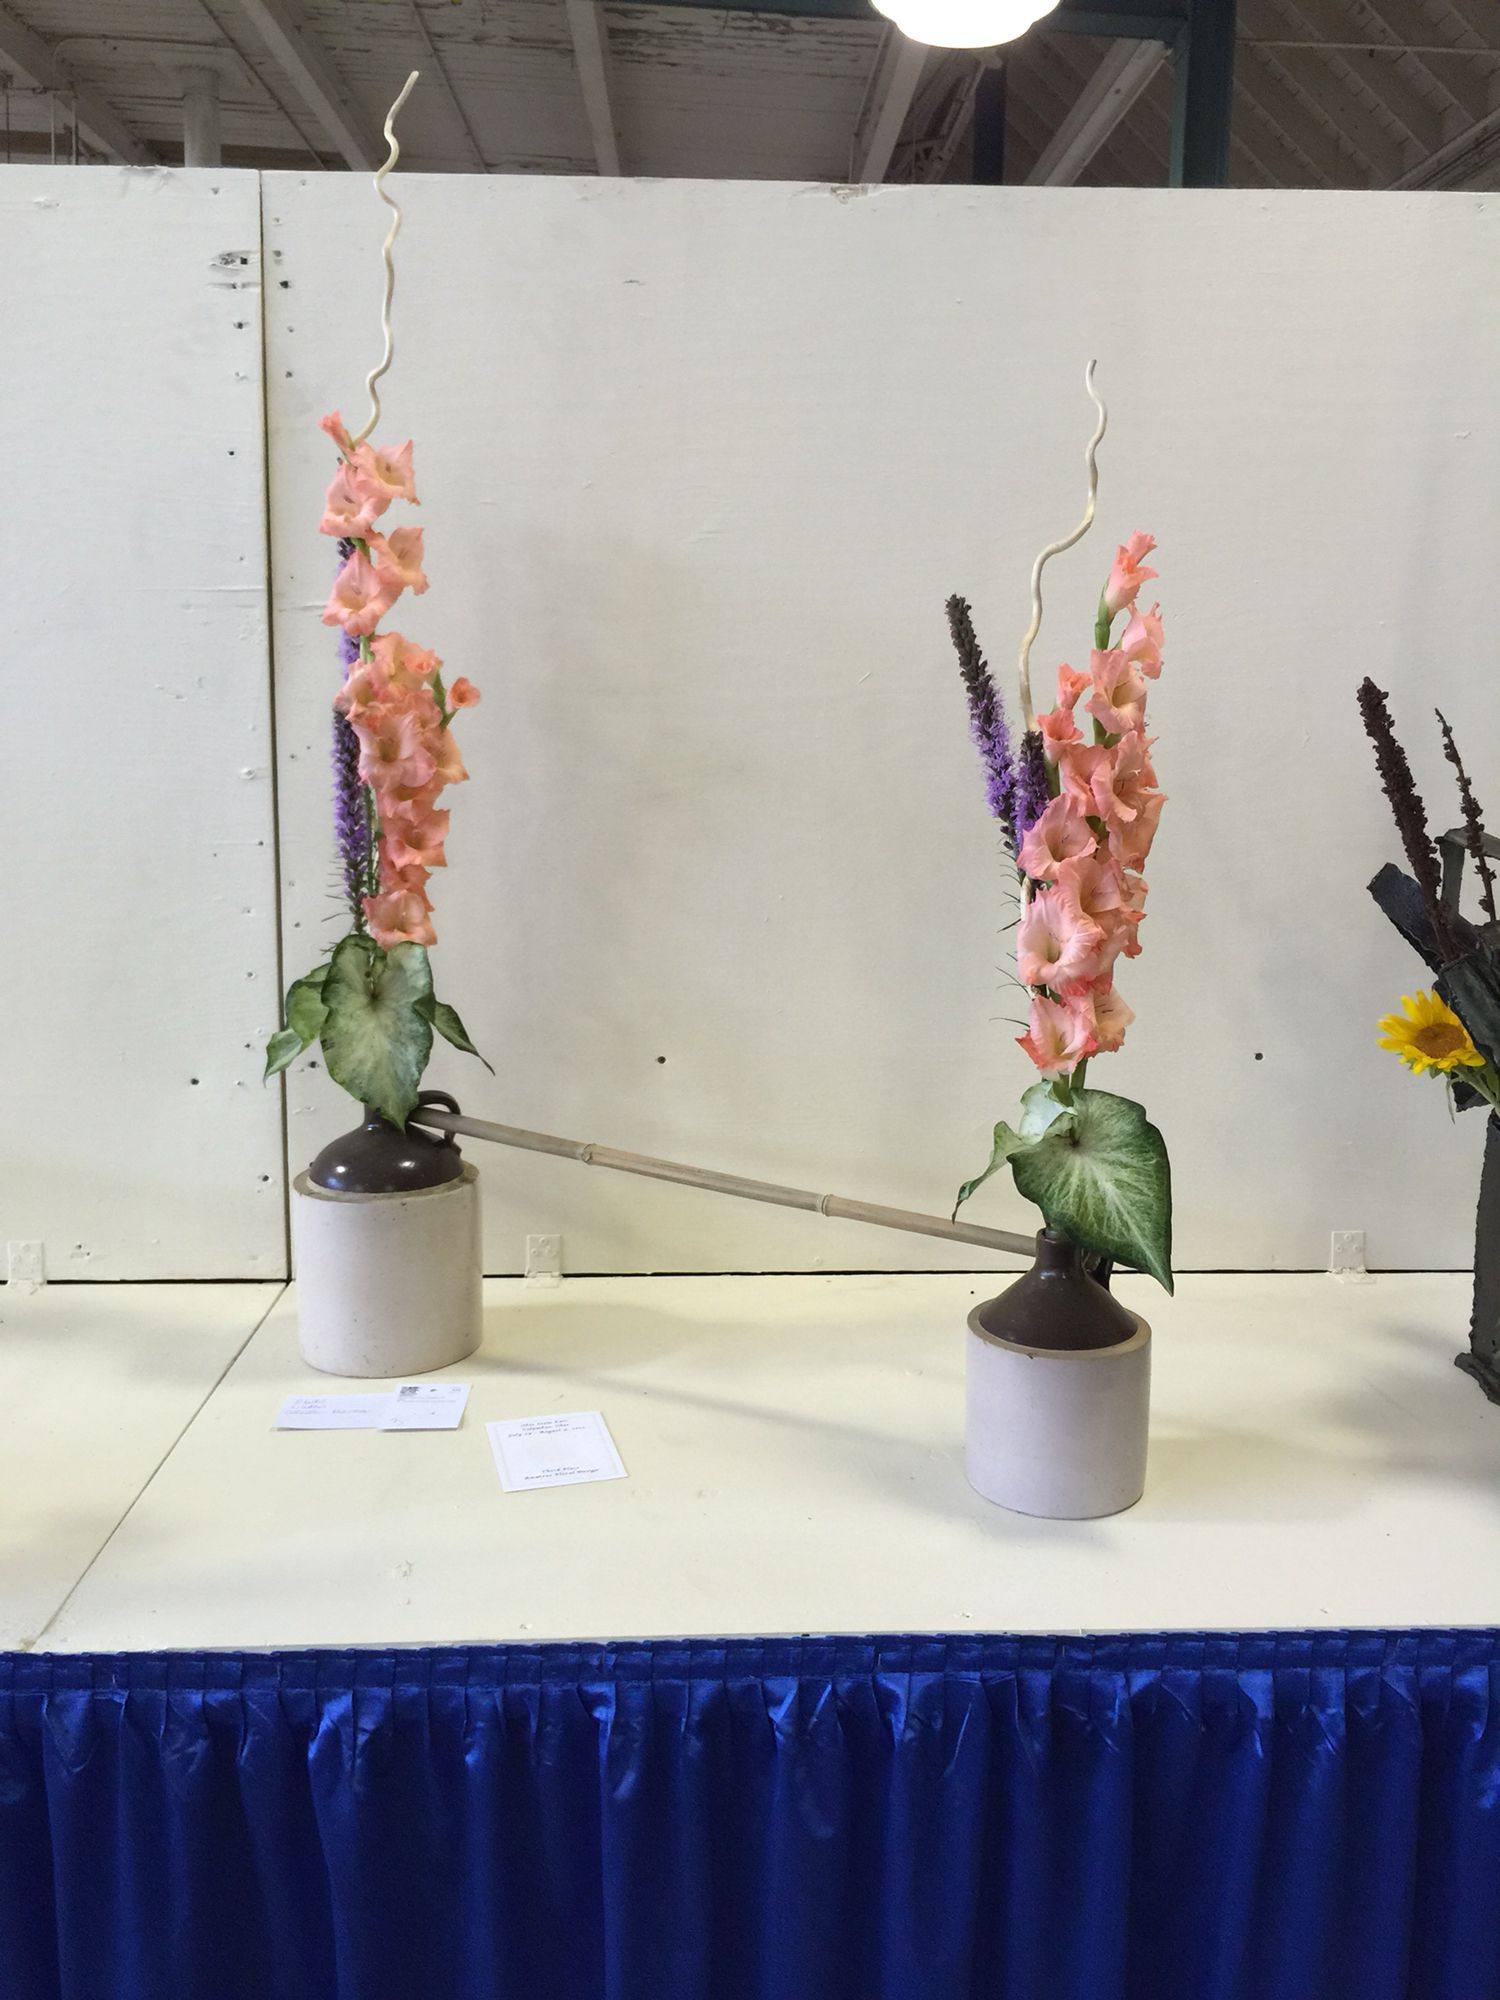 2015 stretch design by abbie riley flower arrangements on sweet dreams for your home plants decoration precautions and options id=66521